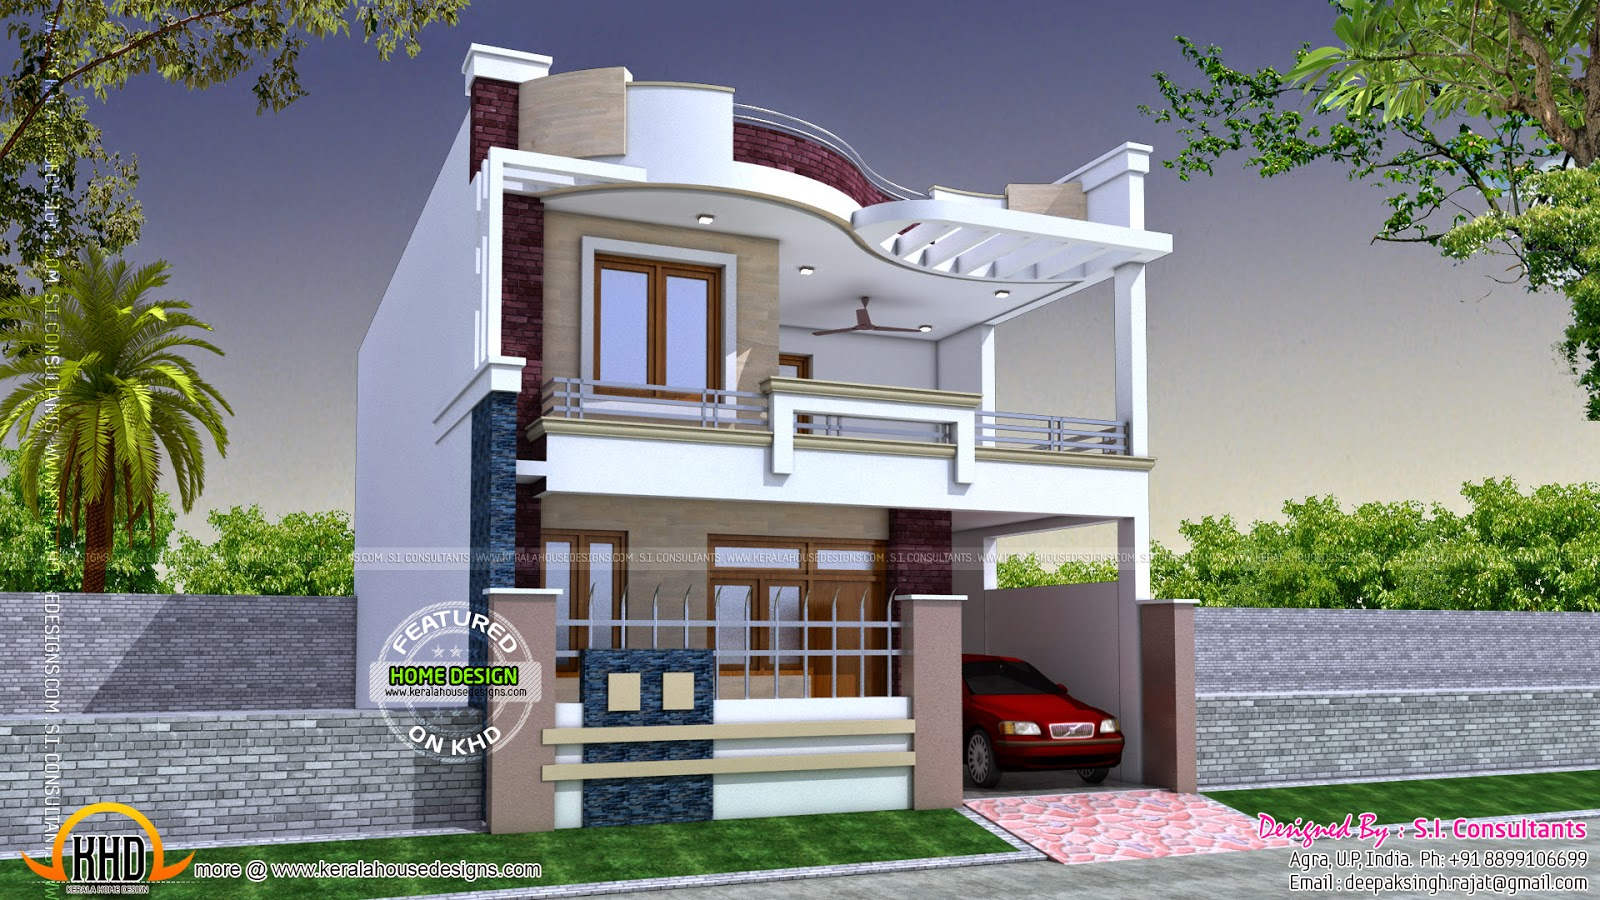 Modern indian home design kerala home design and floor plans for House design plans with photos